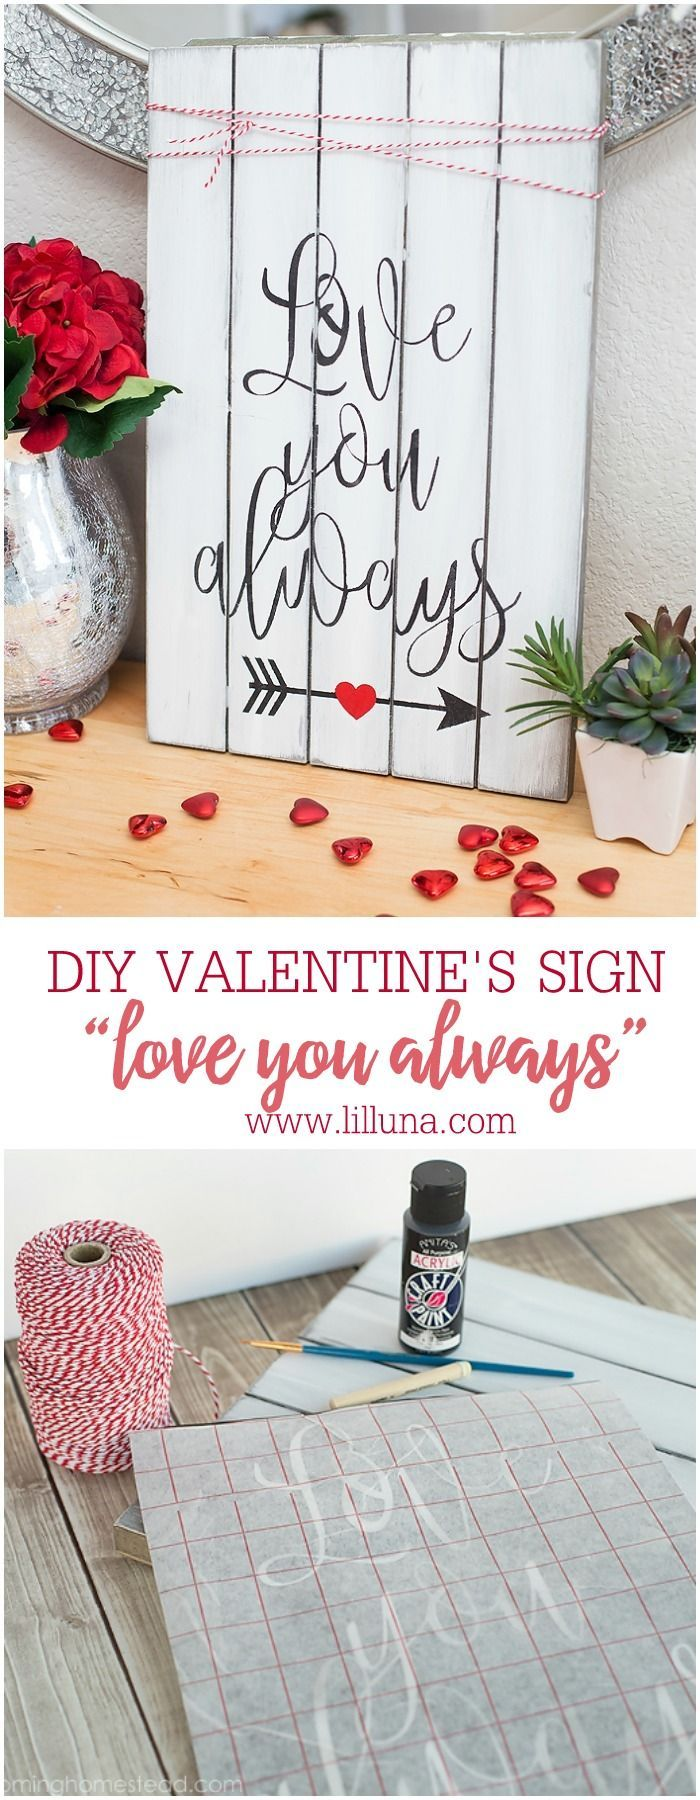 Home decor - My Garden | Craft, Holidays and Valentine crafts